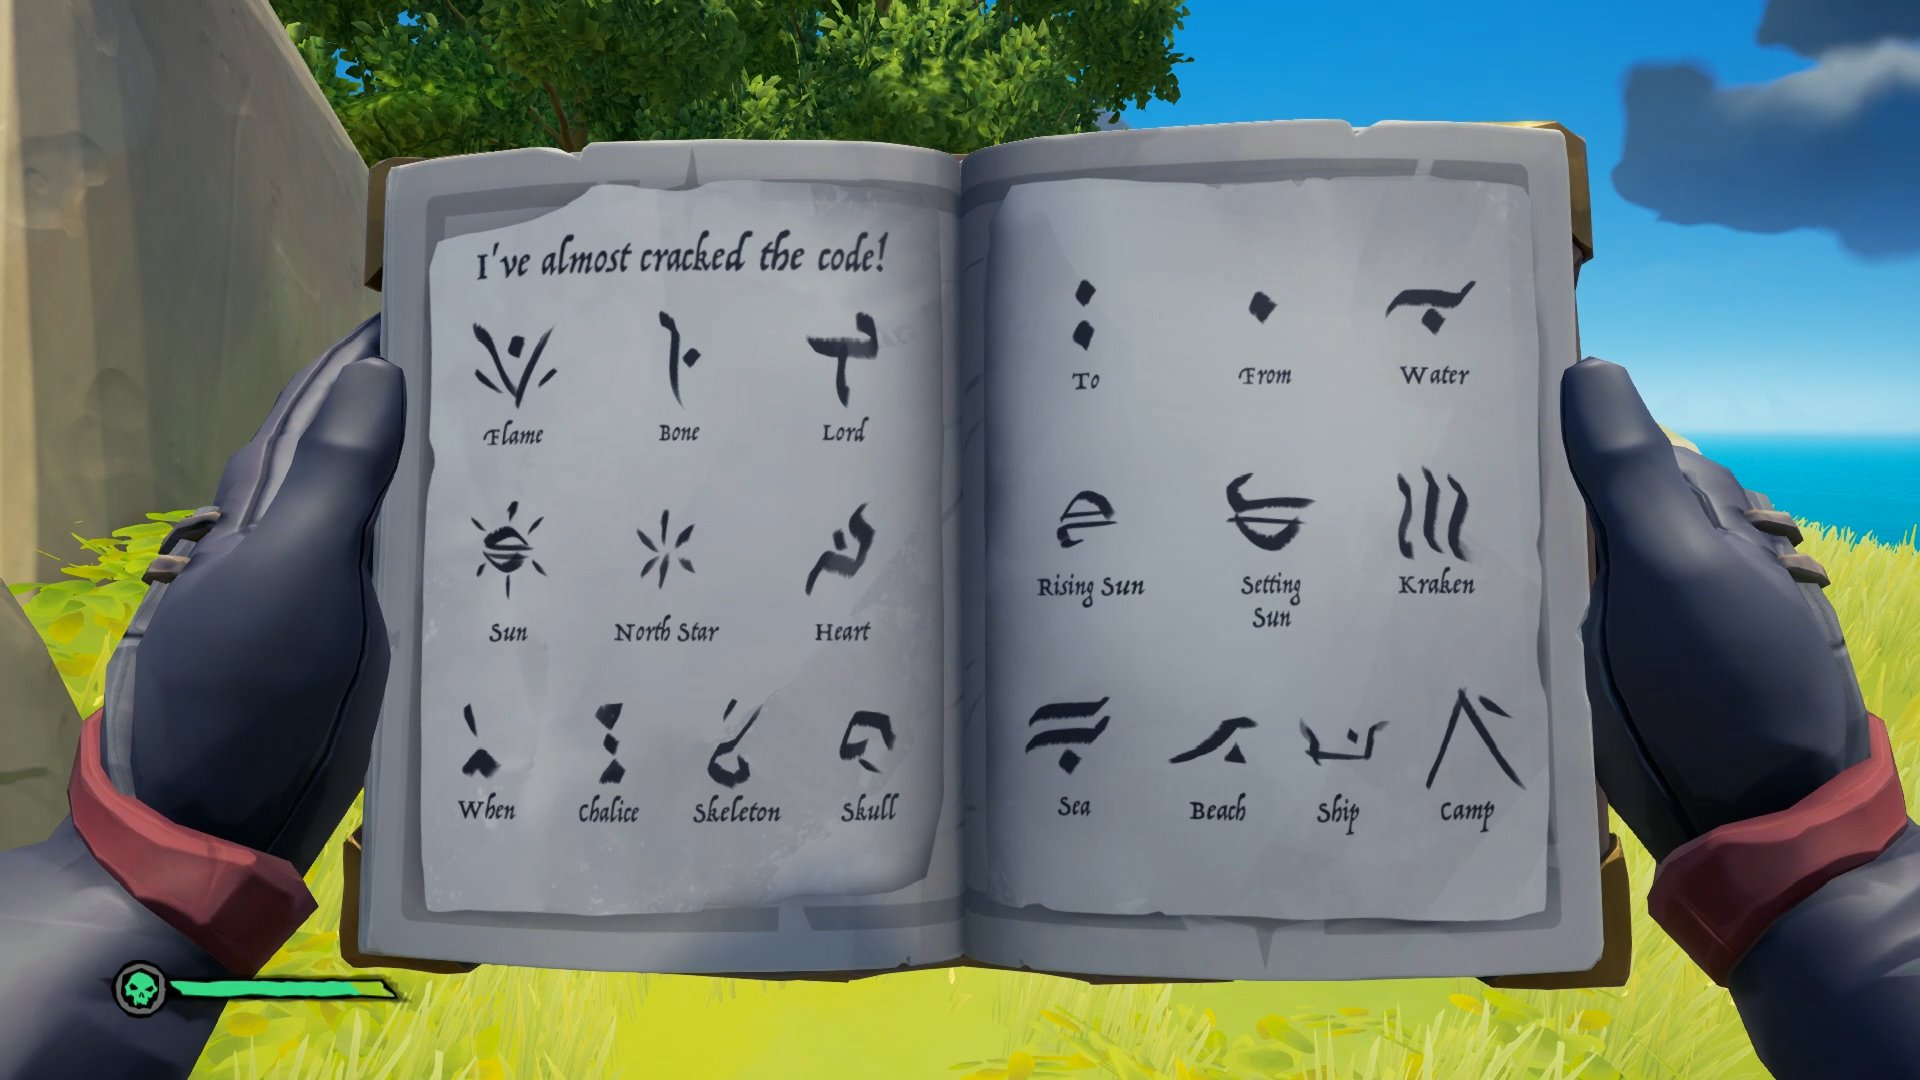 Sea of Thieves skeleton language code